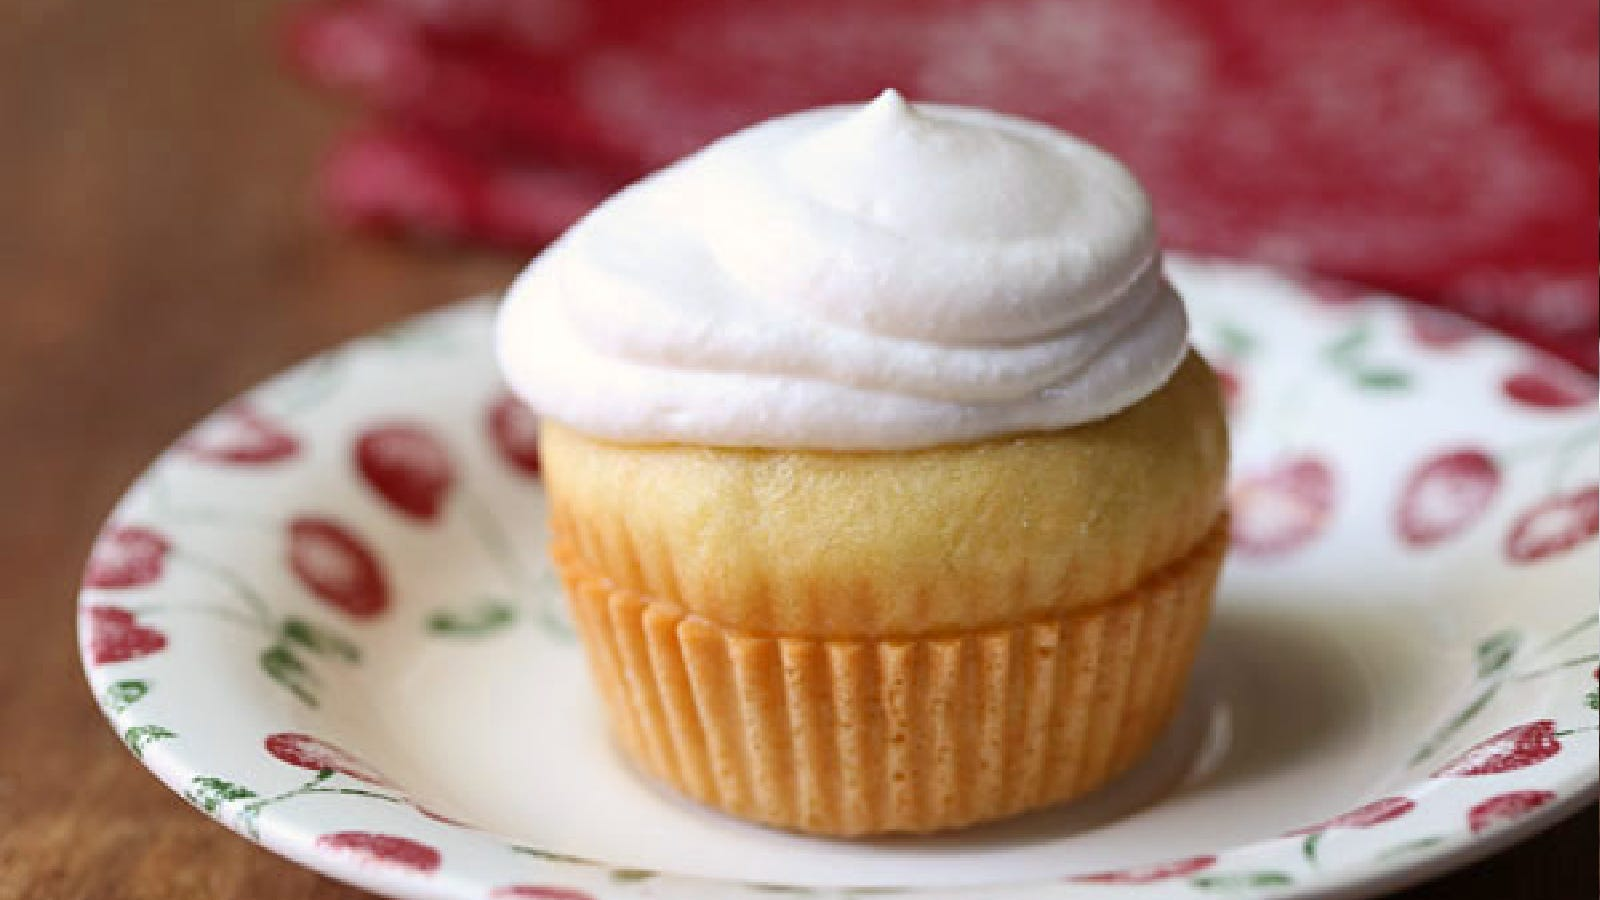 A cupcake topped with yogurt frosting sitting on a plate.